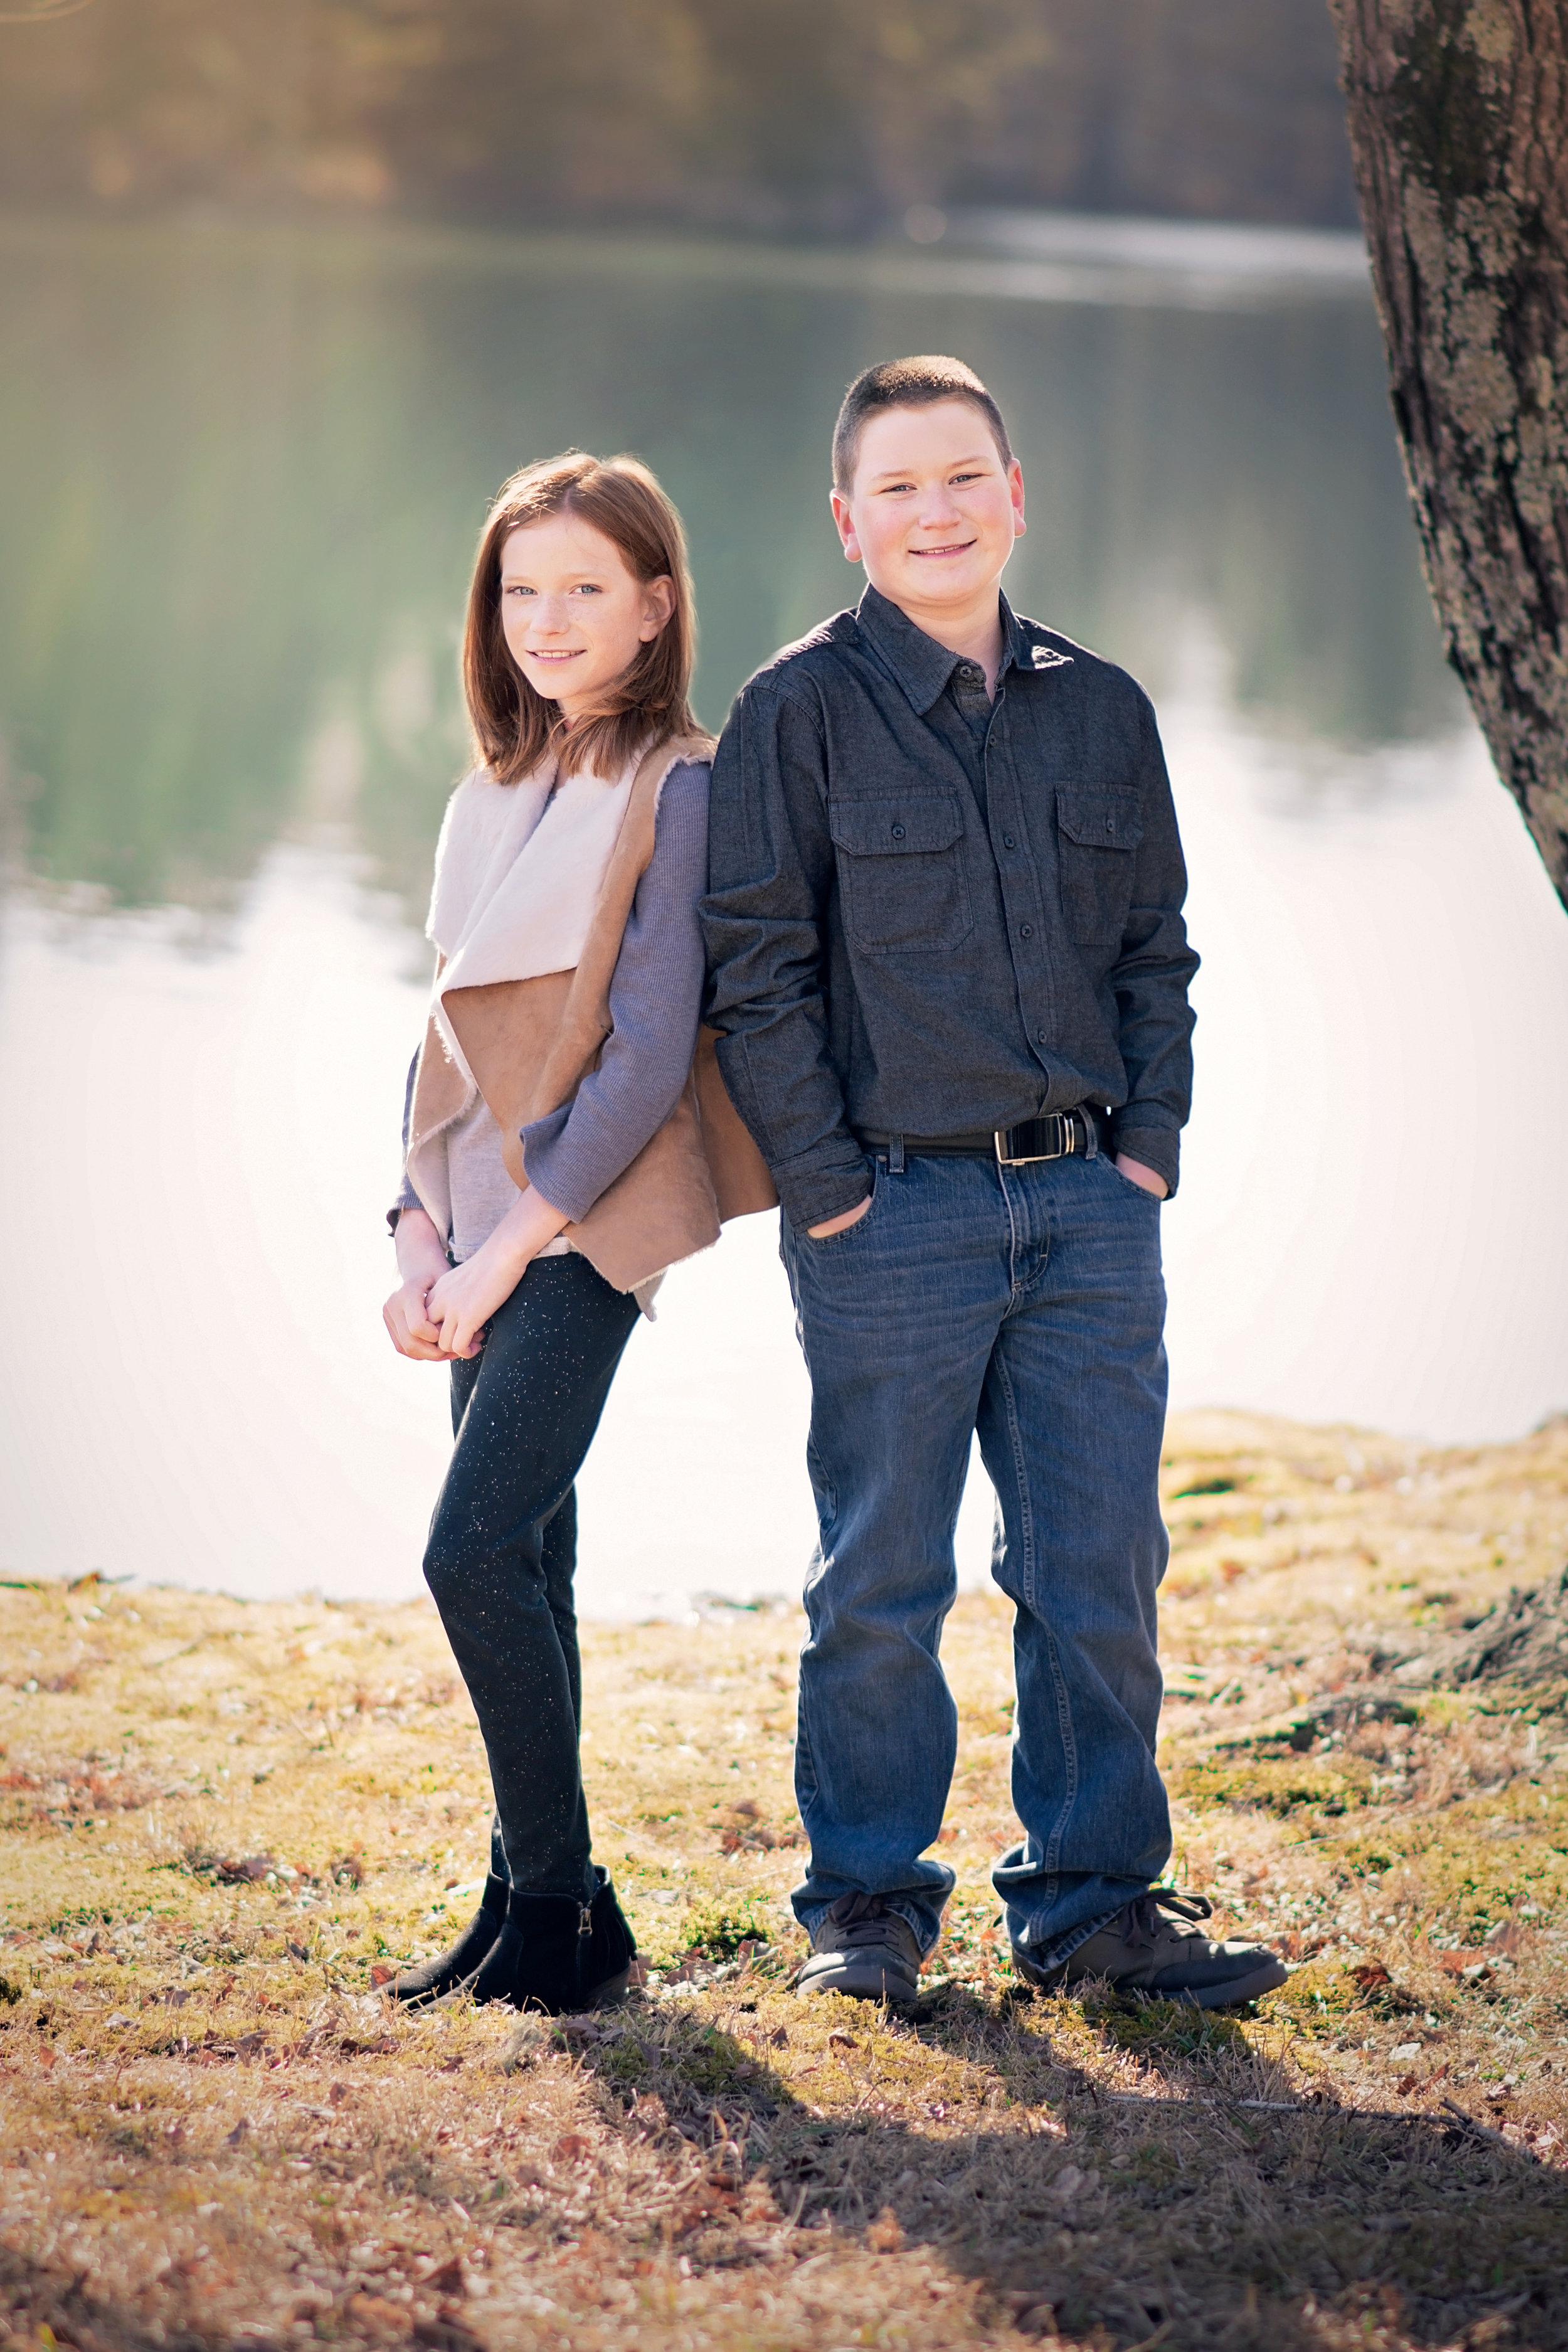 """""""She did an amazing job with my family photos! Kayla made the entire experience so easy and fun!"""" - Tabbetha Thomas"""